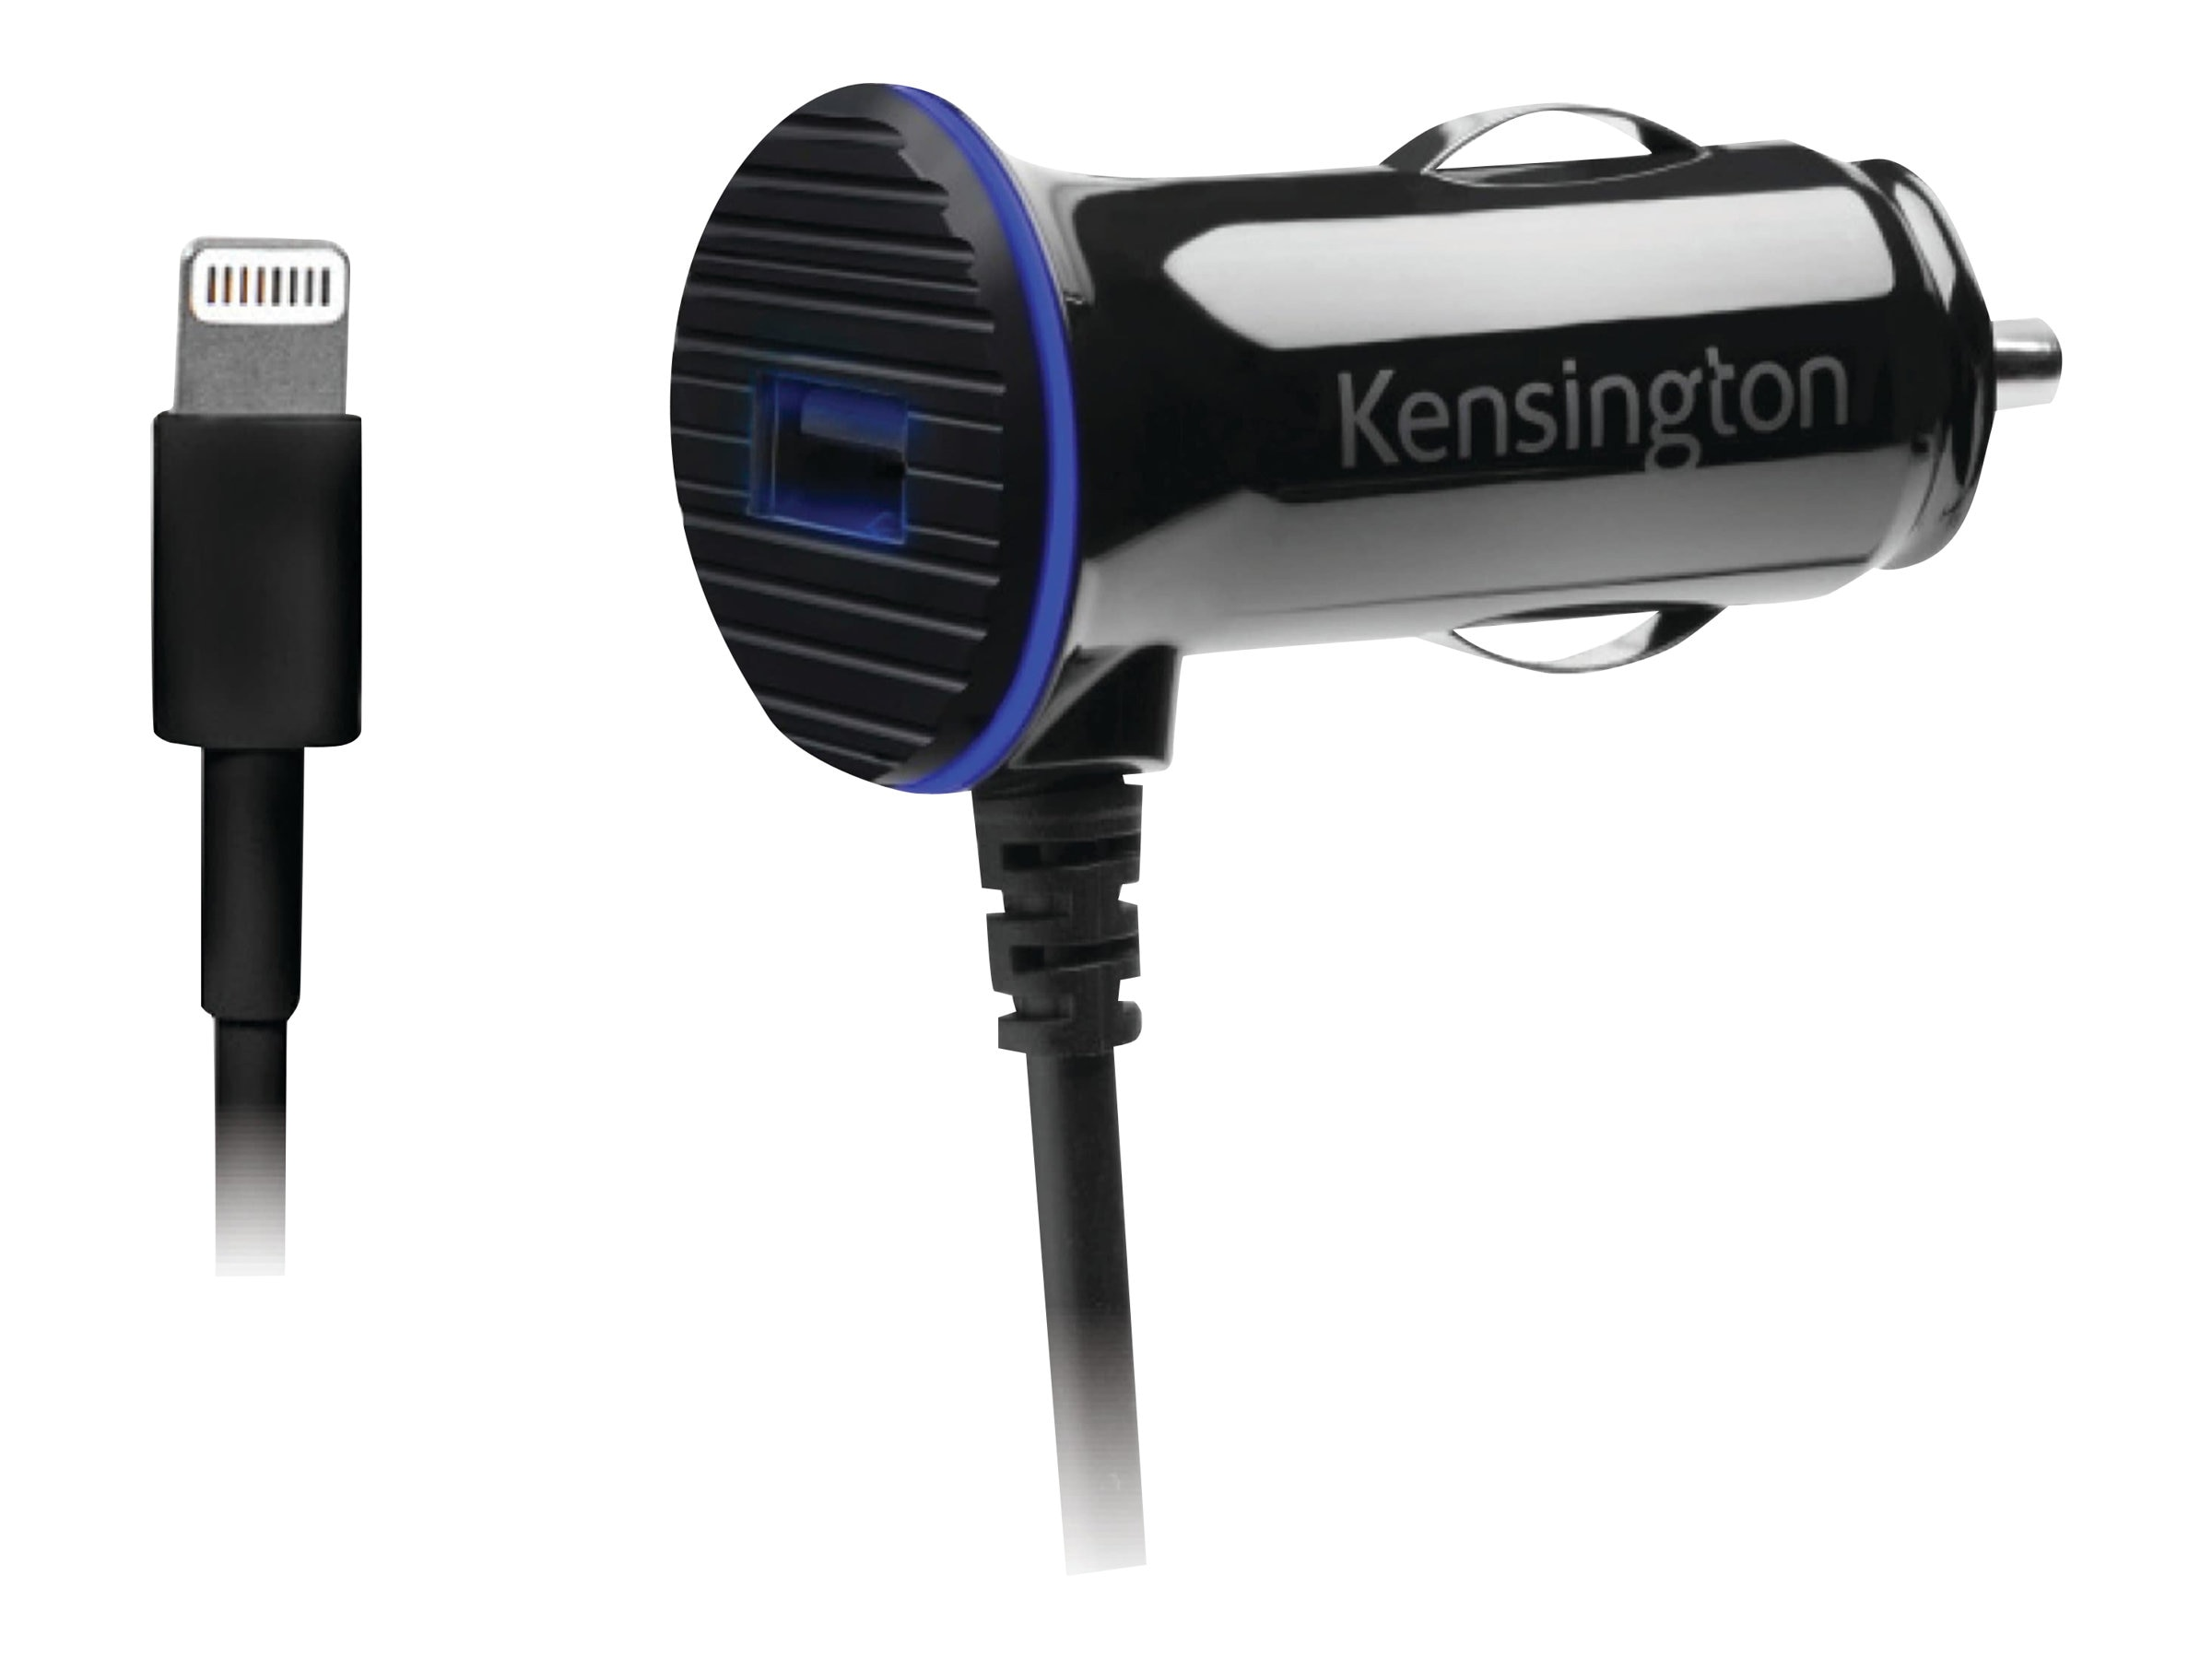 Kensington PowerBolt 3.4 Dual Port Fast Charge Car Charger, Lightning Connector, K39794WW